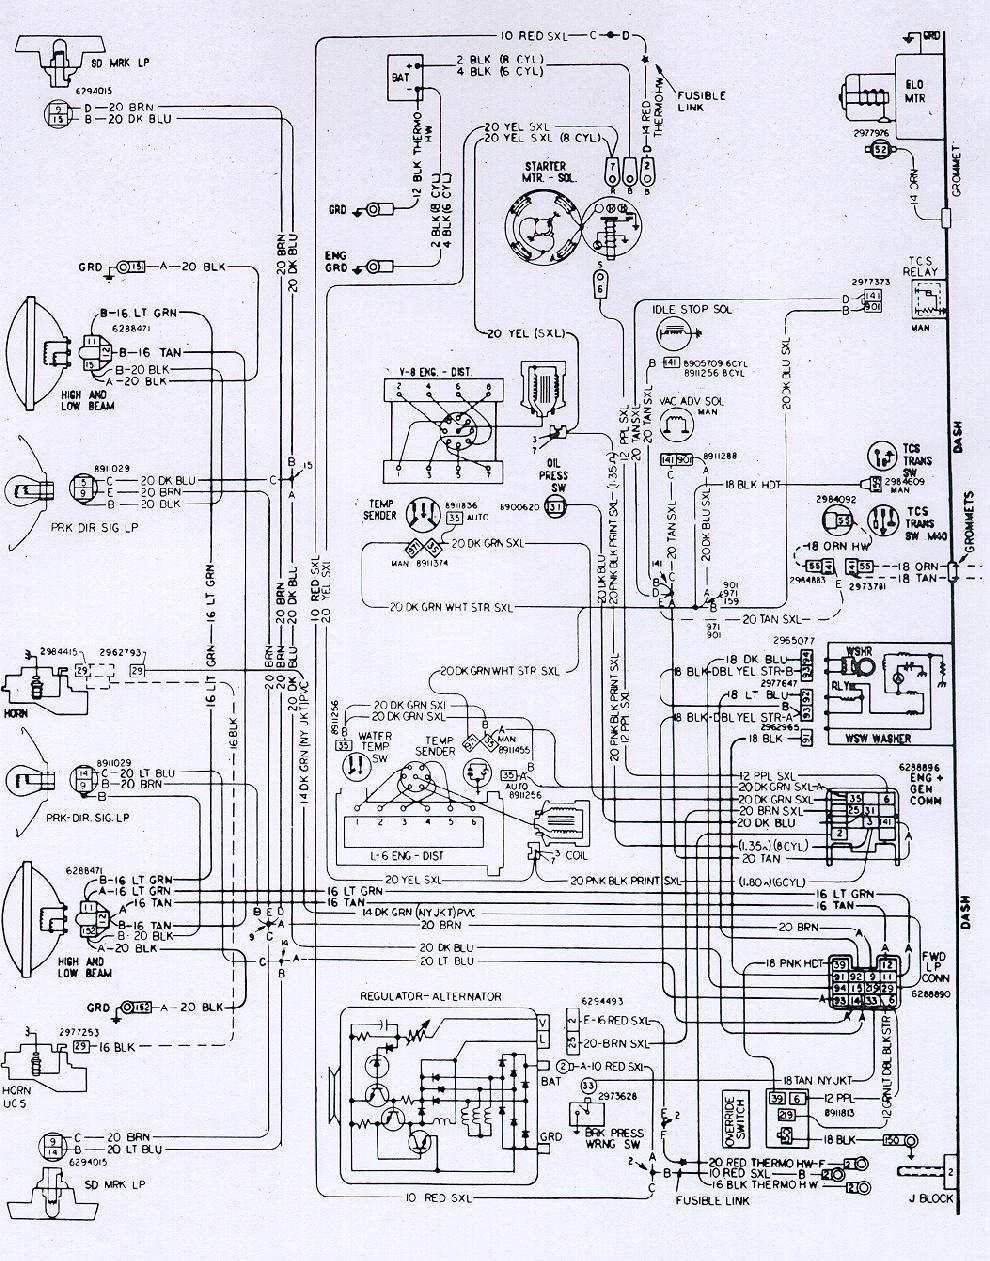 medium resolution of 67 camaro ignition wiring schematic wiring diagram third level 67 camaro steering column wiring diagrams 1967